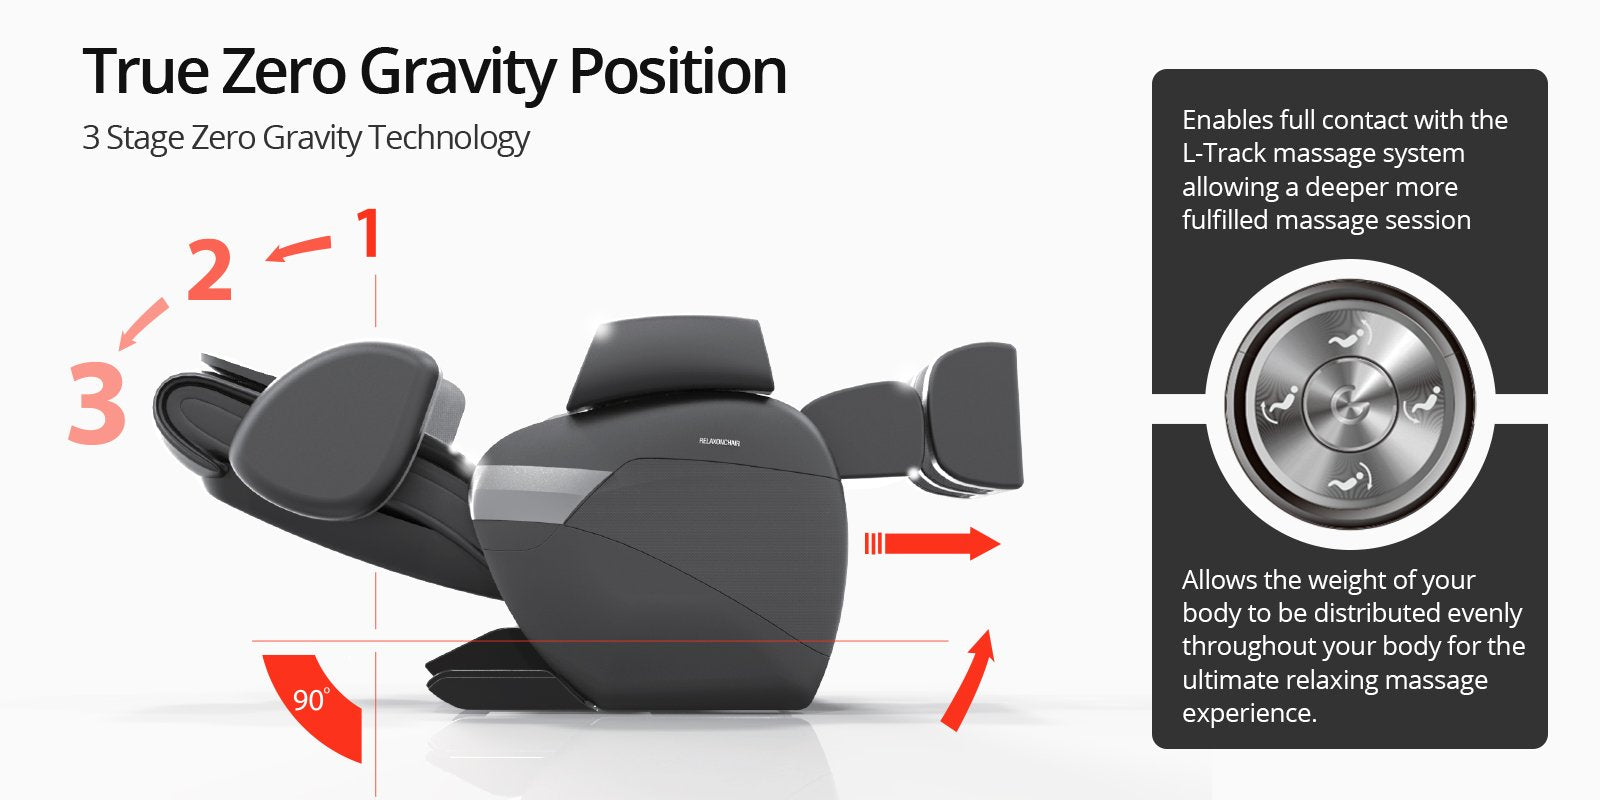 Relaxonchair True Zero Gravity Position, 3 Stage Zero Gravity Technology